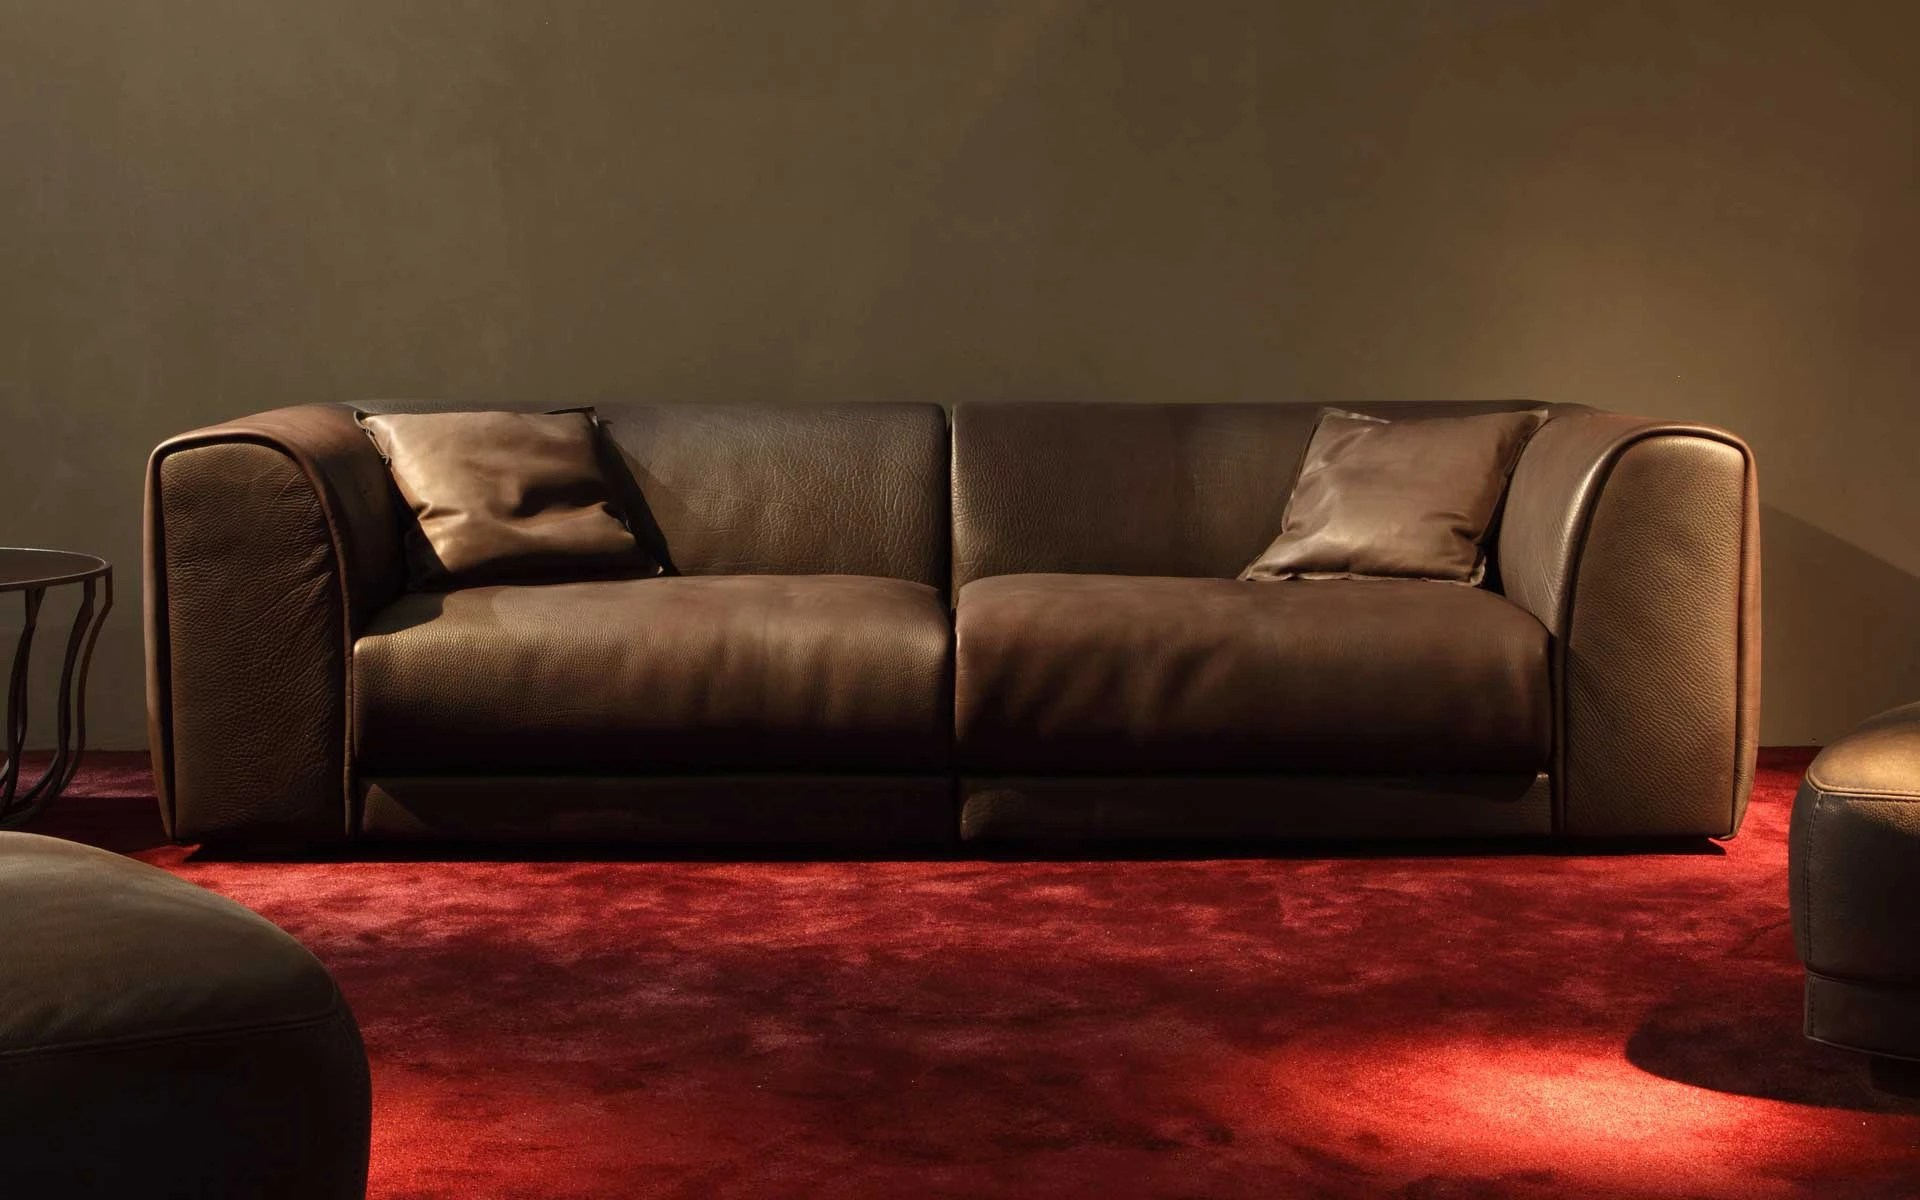 baxter sofa roma futon bed chester moon by design paola